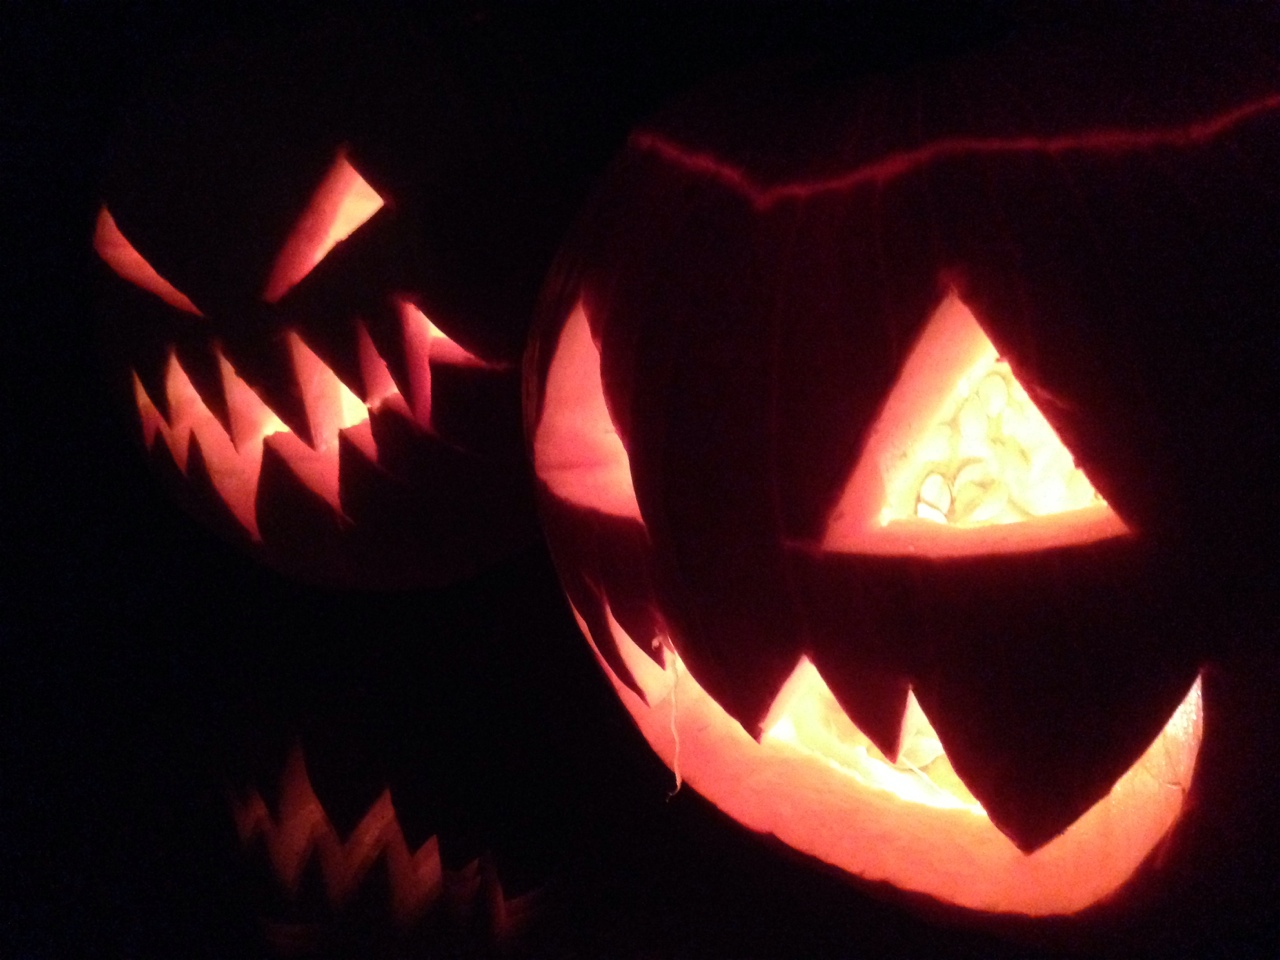 One of my daughters and I carved pumpkins (guess which one is hers). Happy Halloween and will close out the month with a few links:   More LA tech funding fun… http://www.builtinla.com/blog/q3-2014-was-la-techs-biggest-funding-quarter-ever-heres-breakdown    Is it great content or the growth hacking, data, and analytics combo that's winning in digital publishing?… https://gigaom.com/2014/10/28/buzzfeed-expands-its-data-team-by-acquiring-company-run-by-the-co-founder-and-former-cto-of-bitly/    Like to see when the switch is found that turns on the hockey stick… http://recode.net/2014/10/29/younow-is-the-live-video-amateur-hour-that-nearly-died-now-its-booming-heres-how/    FB threat to publishers… http://digiday.com/publishers/publishers-creating-social-content-risk/    FB wins against publishers… http://digiday.com/publishers/ivillage/